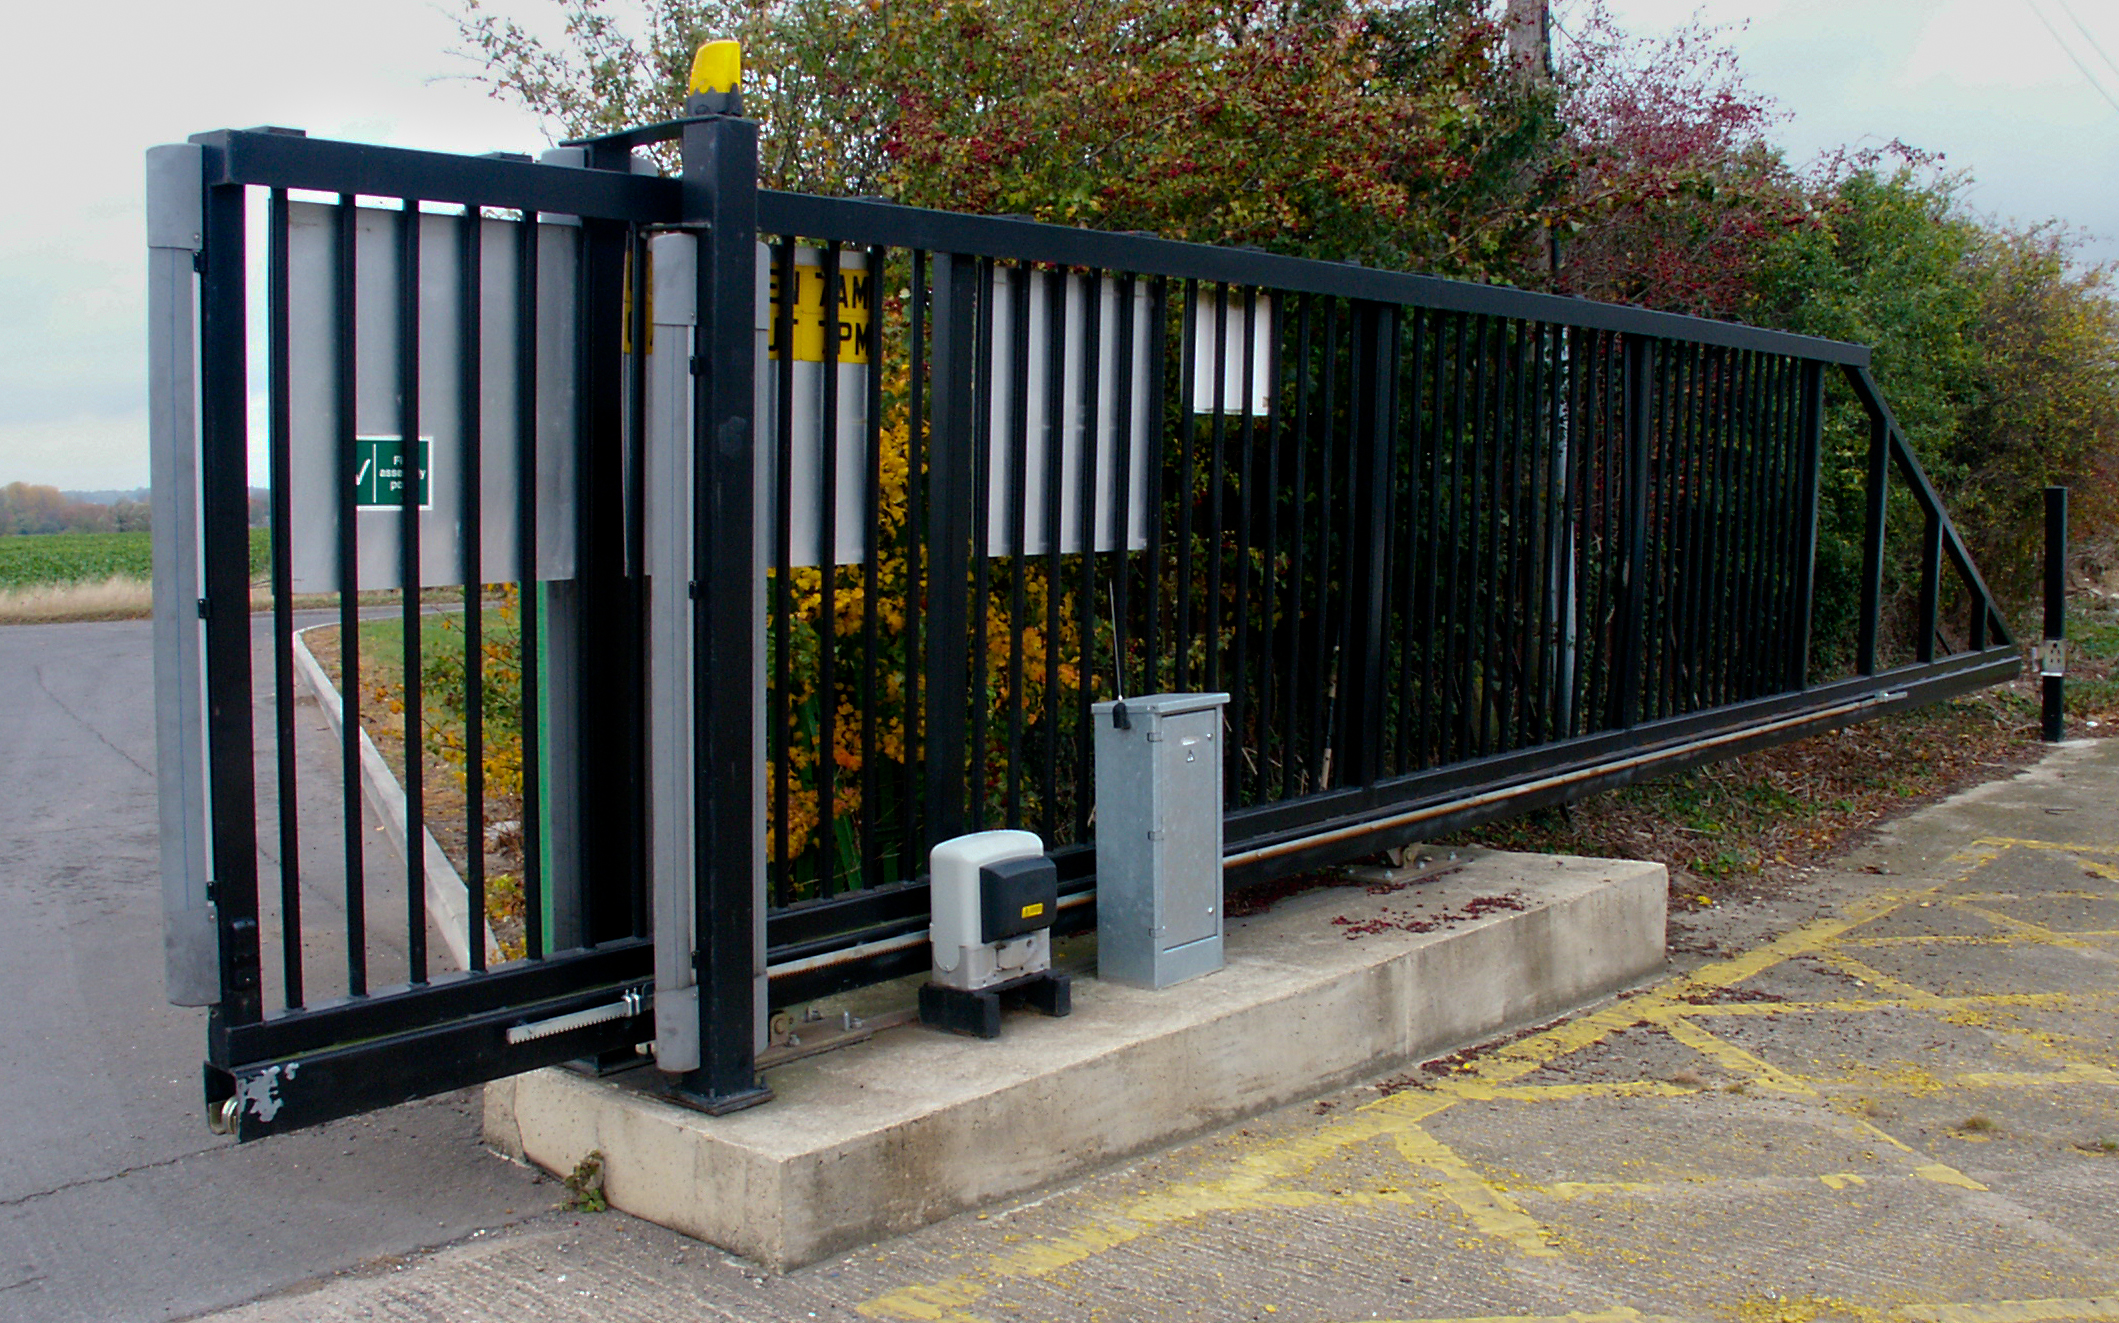 electric gates - As well as providing easy control of access to your property or business, automatic gates can be monitored as part of your home security system with the use of CCTV surveillance cameras and having the gate alarmed to prevent unauthorised access.